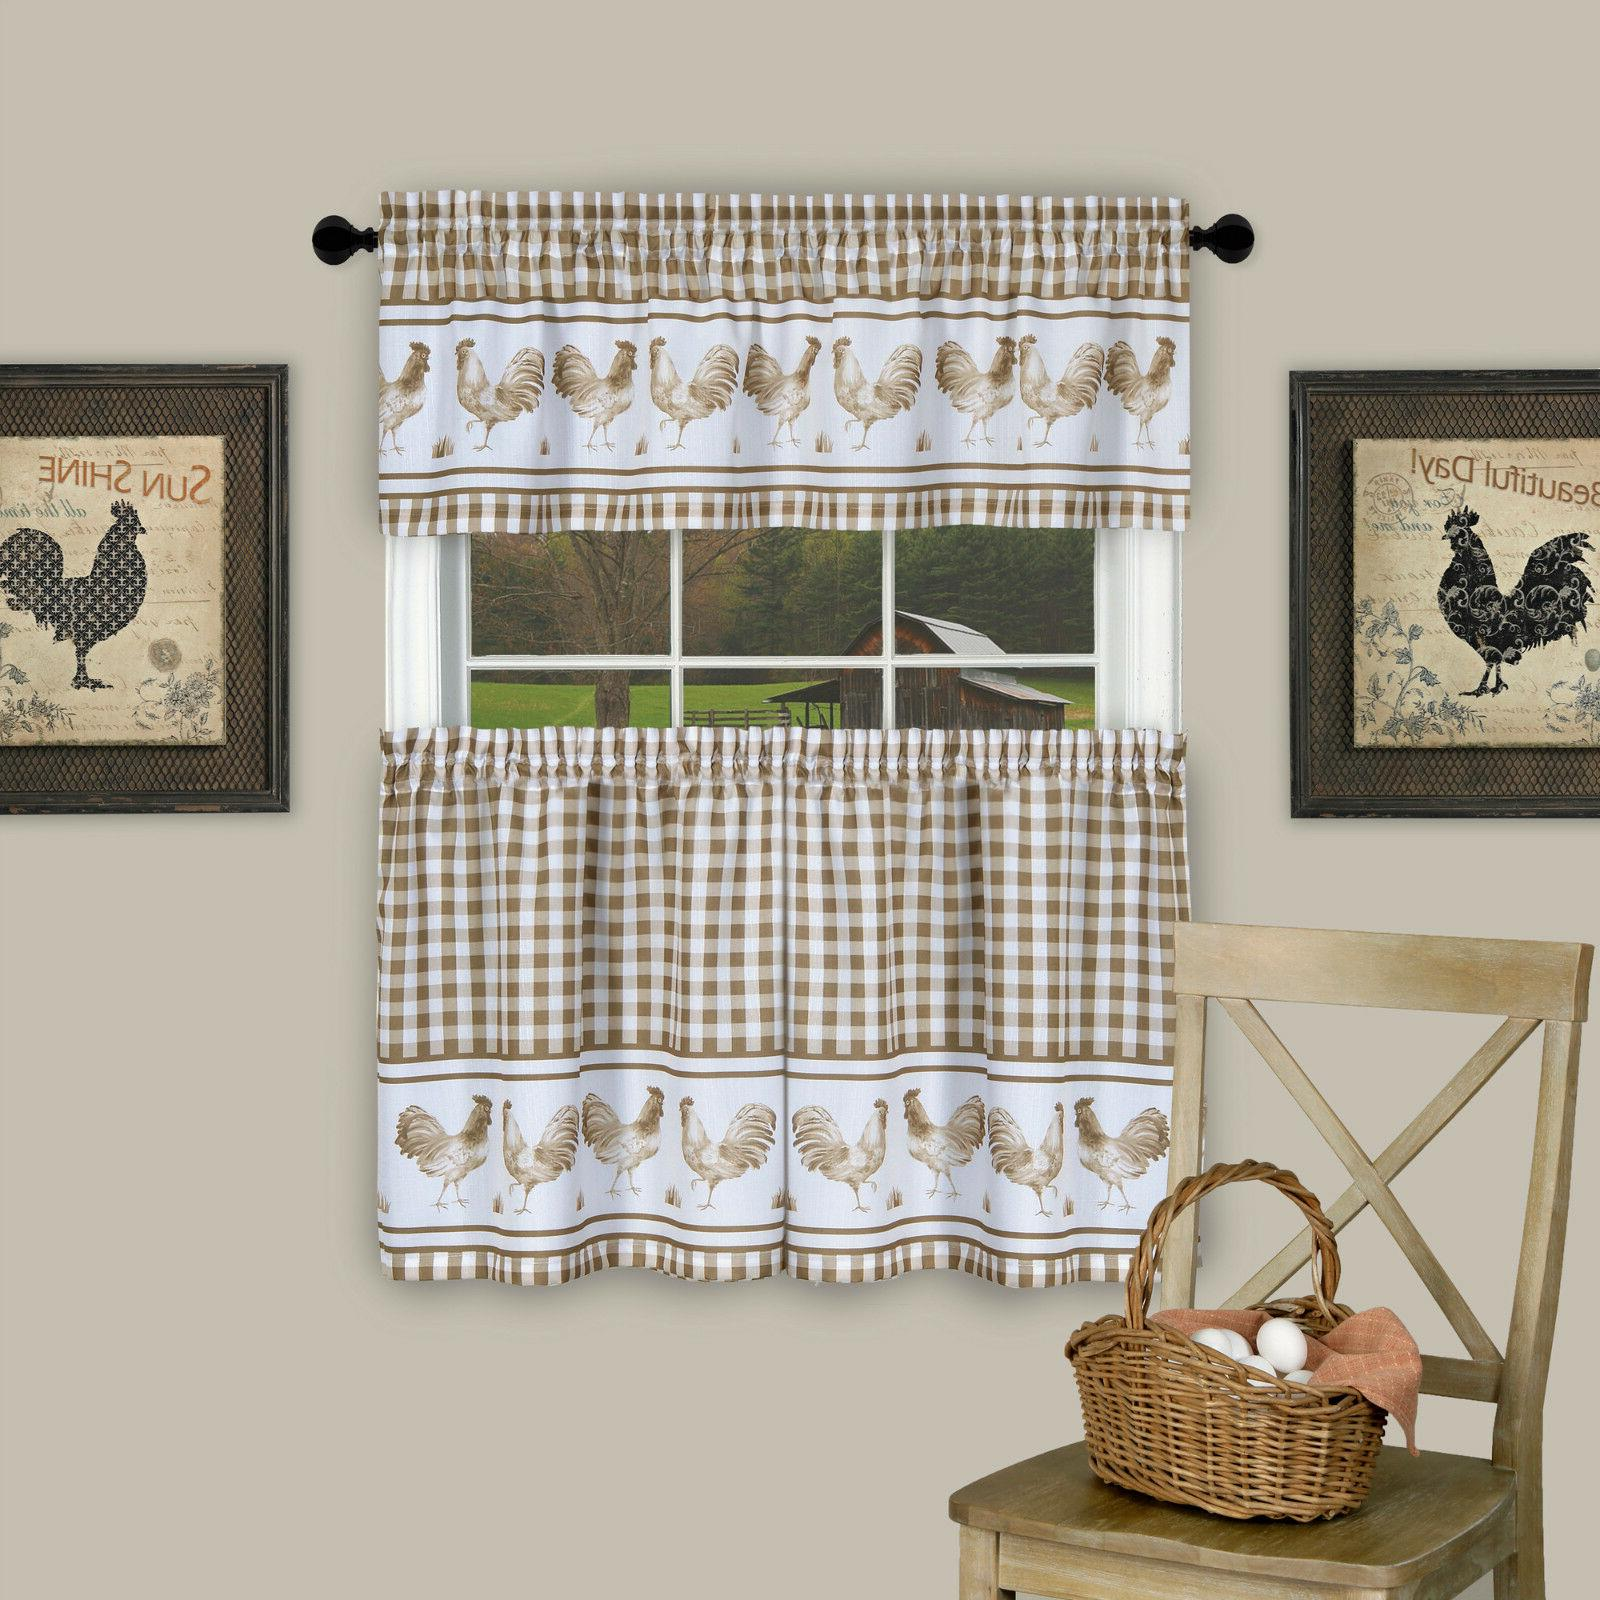 Plaid Rooster Kitchen Tier & Valance - Assorted Colors Sizes